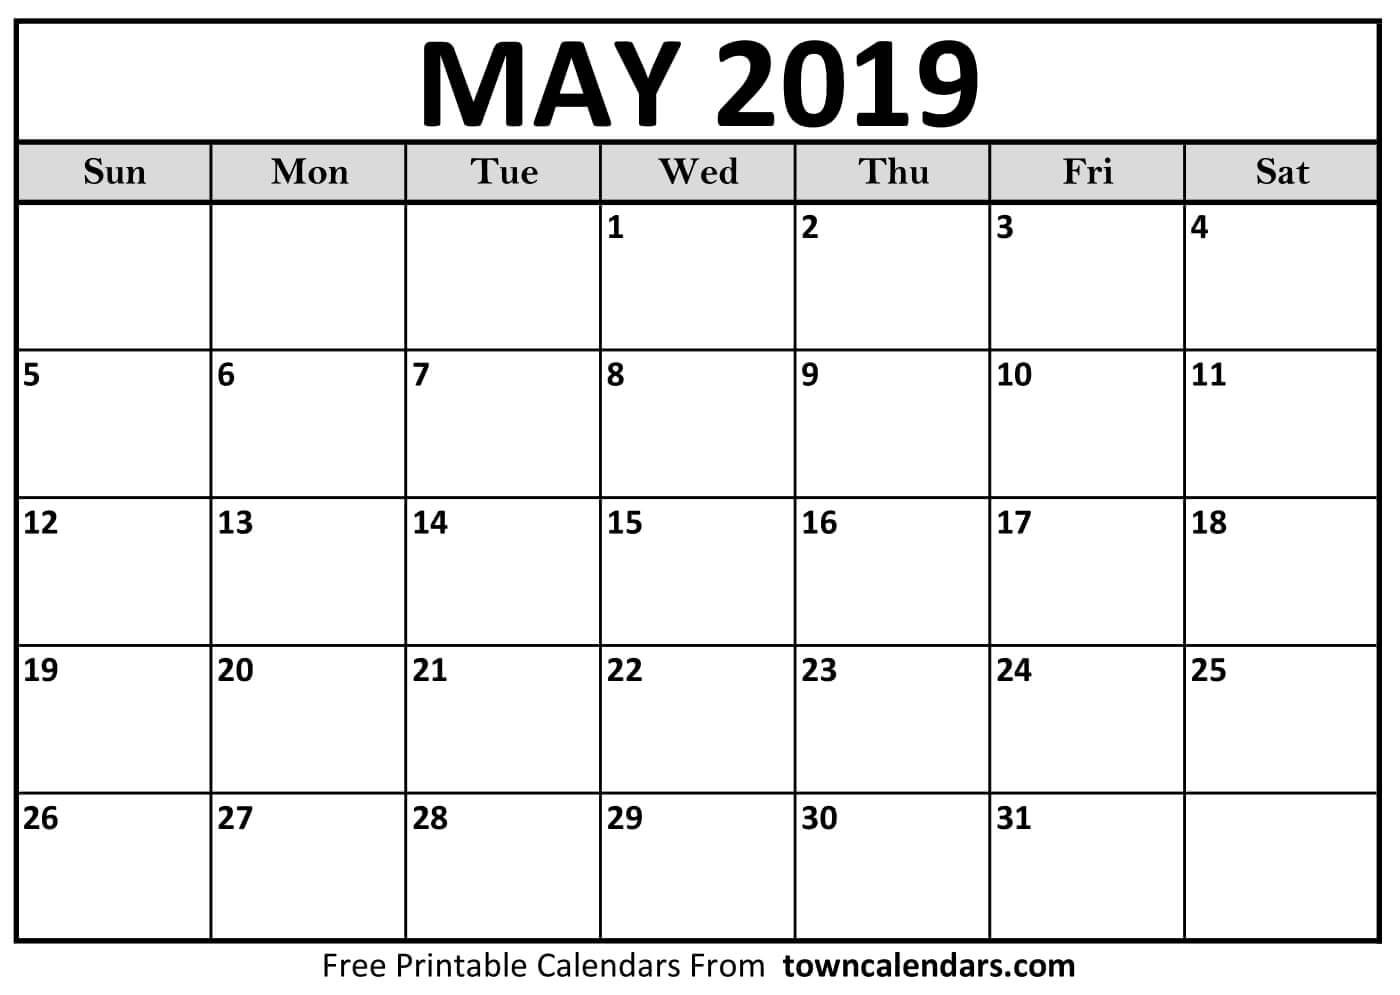 Printable May 2019 Calendar - Towncalendars May 4 2019 Calendar